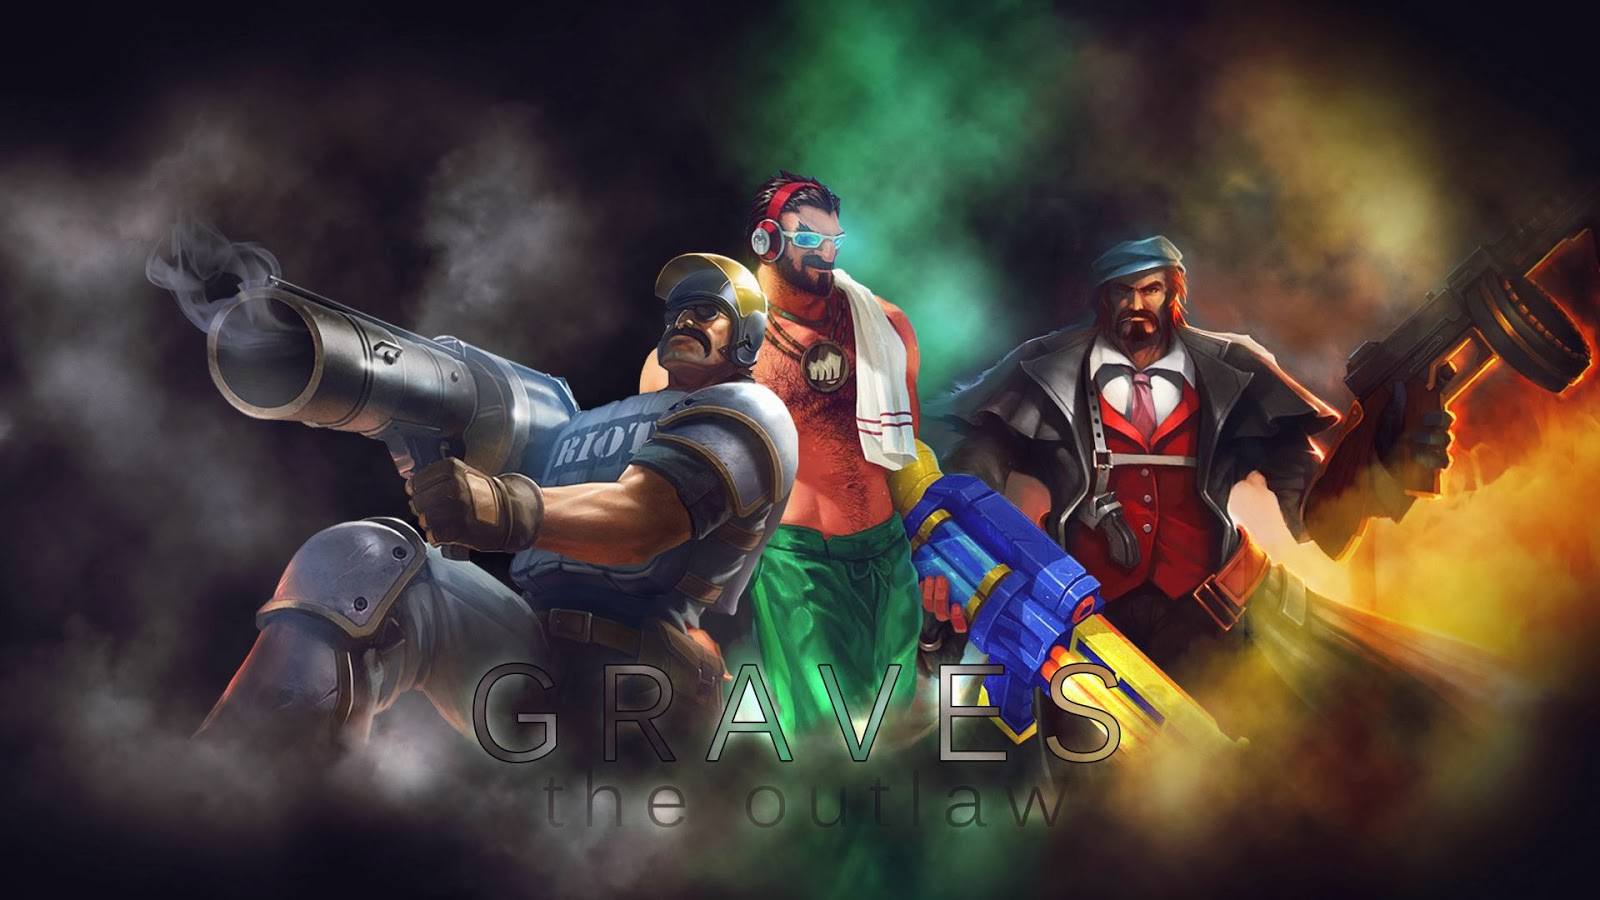 Graves League of Legends Wallpaper